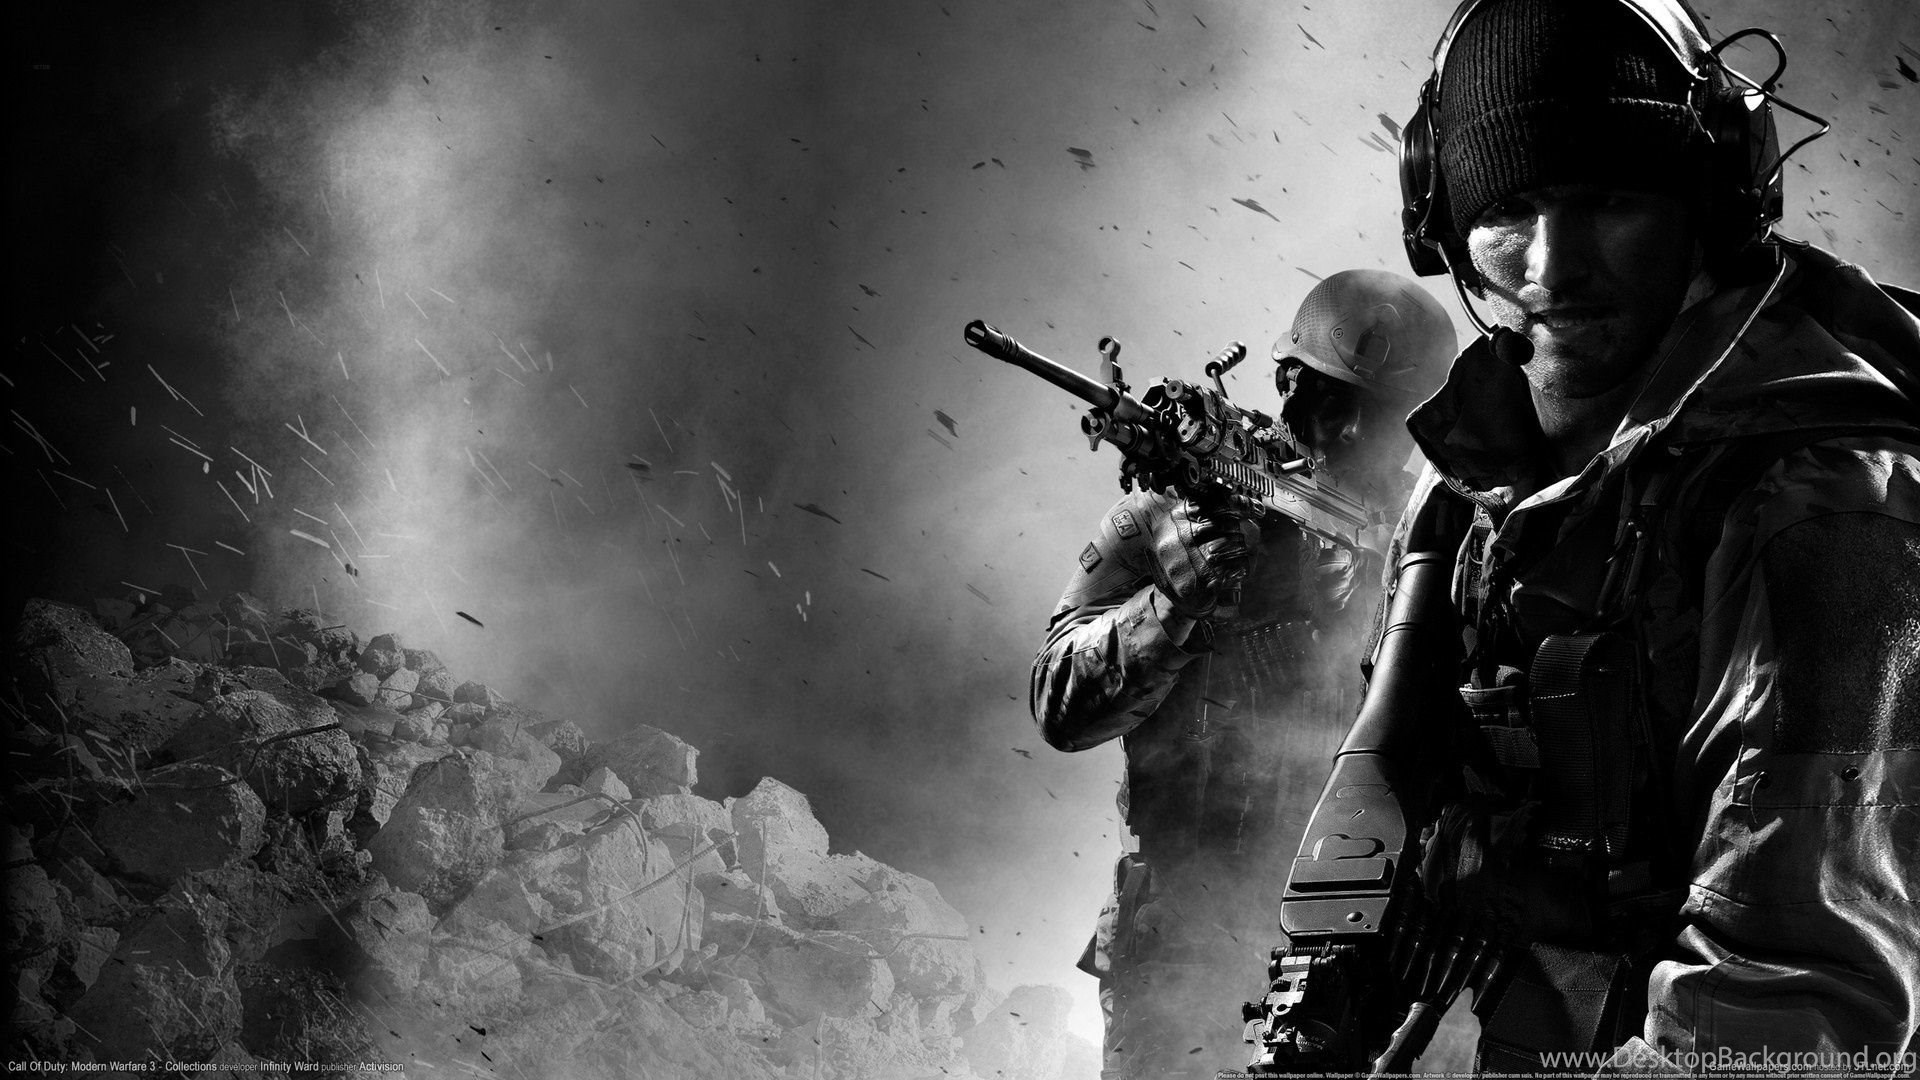 Call Of Duty Wallpapers For Iphone Download Desktop Background